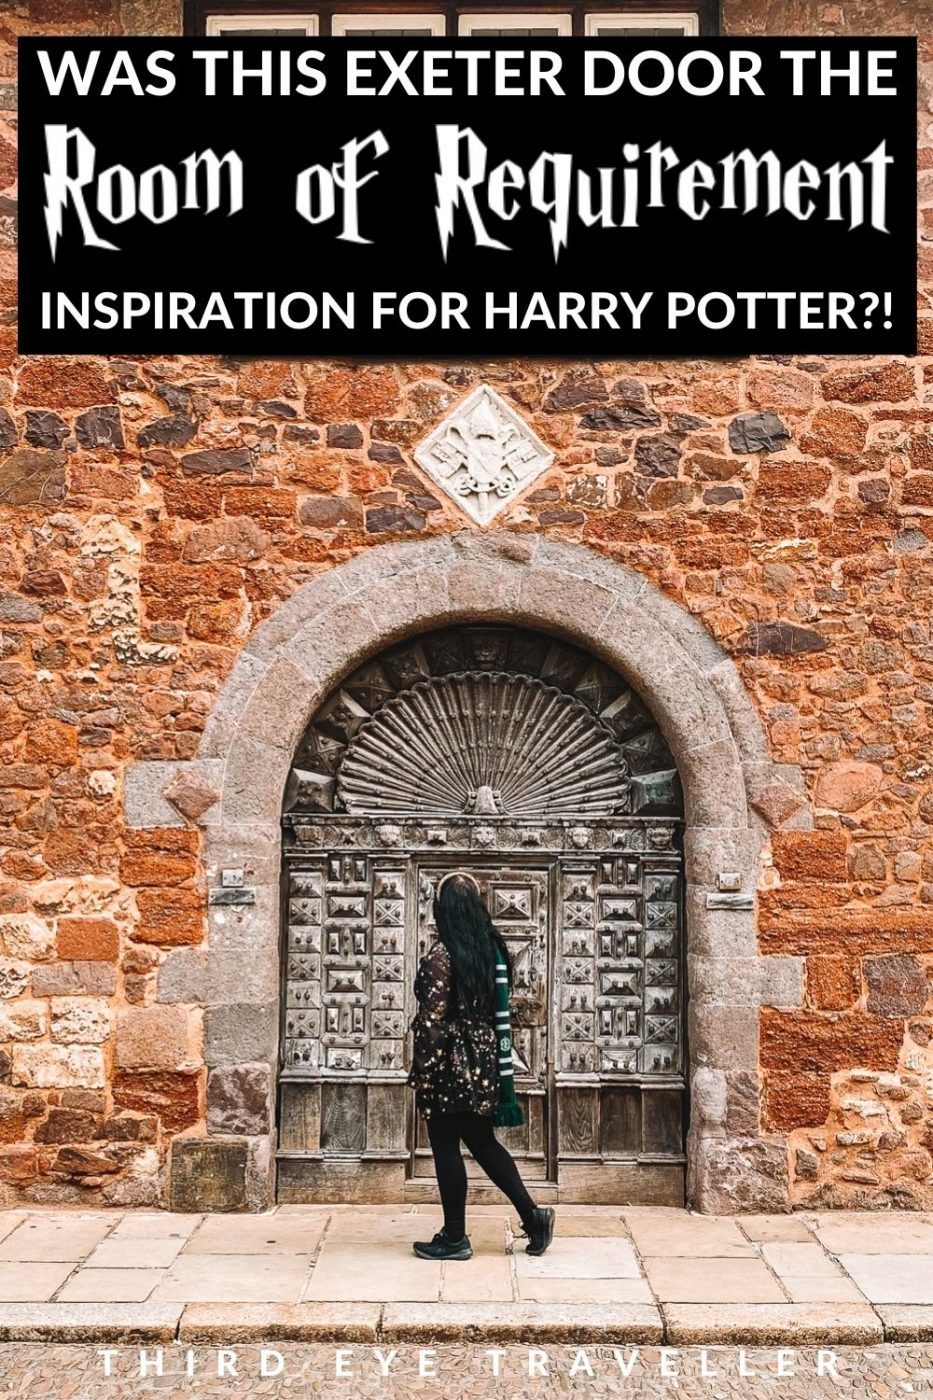 10 Cathedral cLose Exeter Harry potter Room of Requirement door inspiration